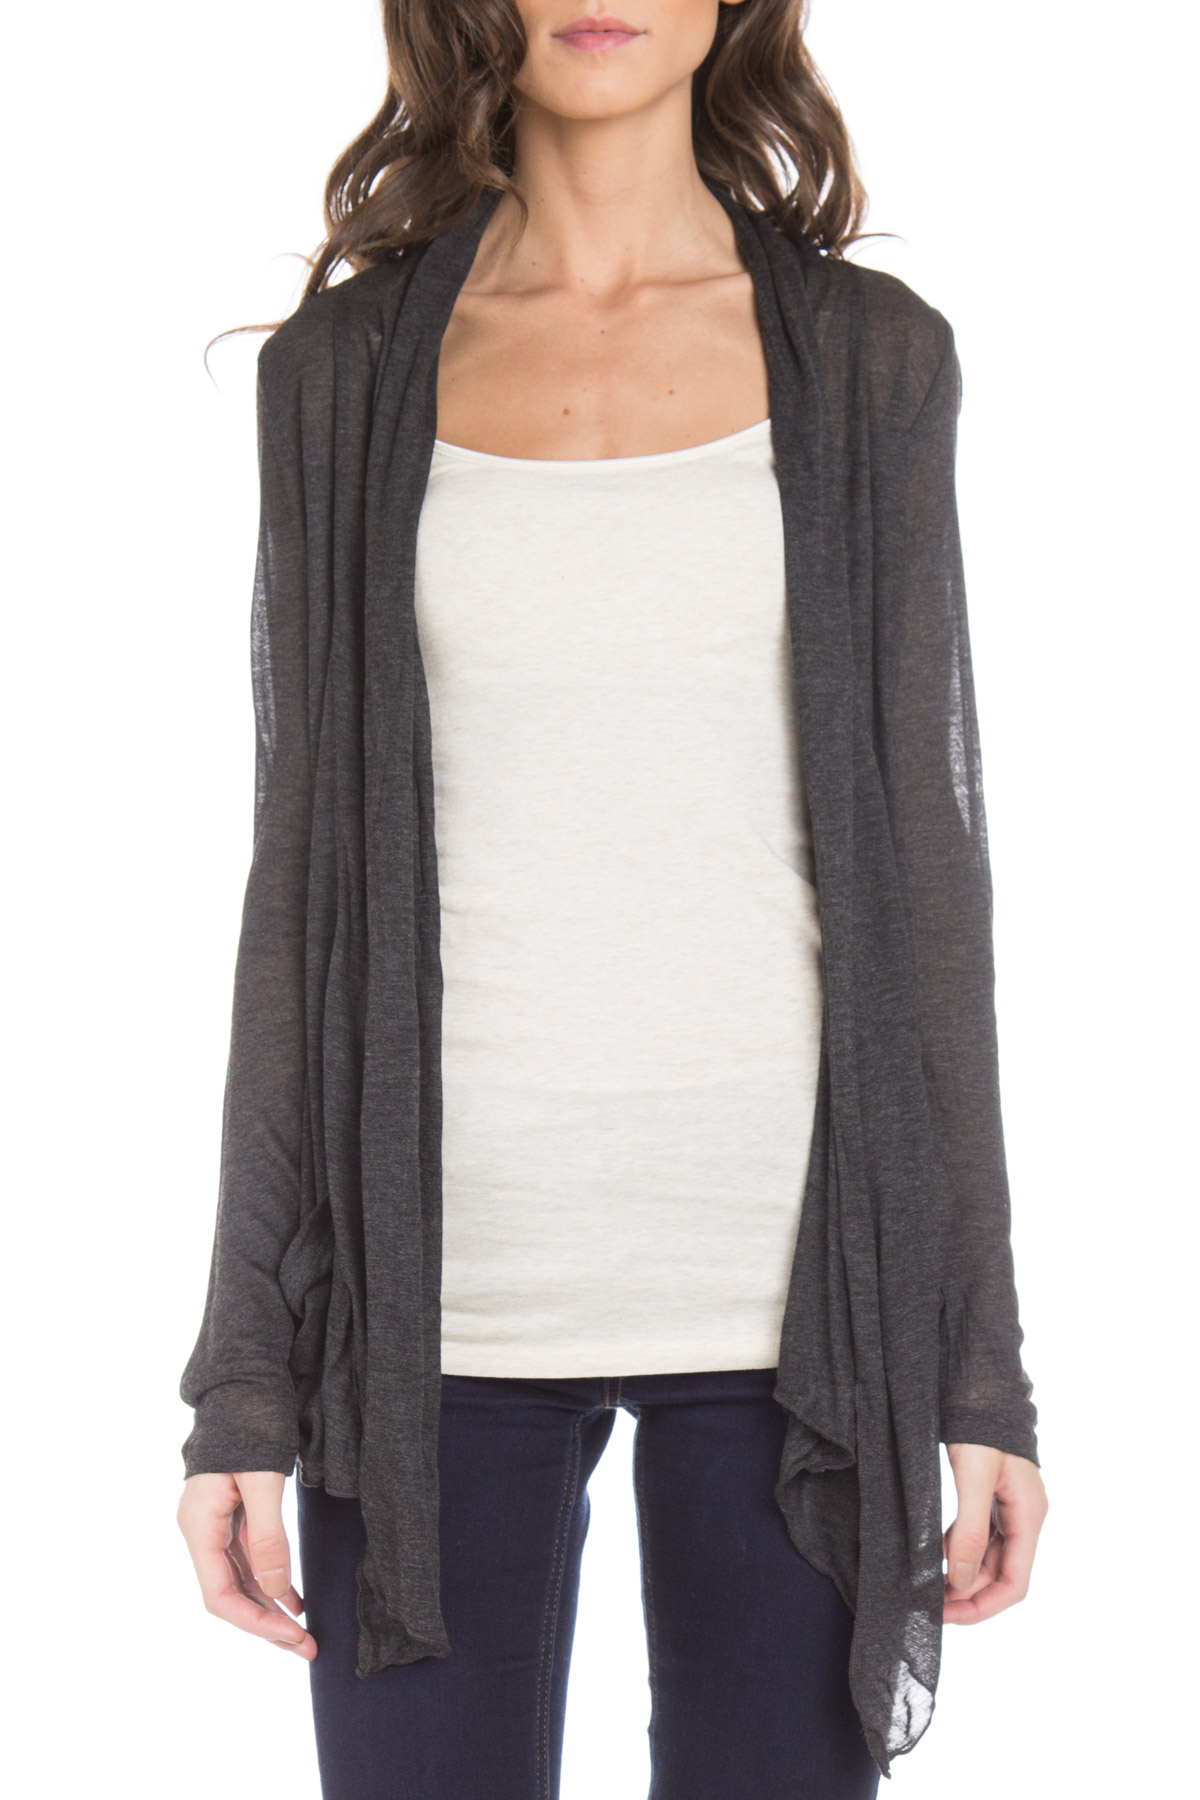 Women's Lightweight Long Sleeve Open Pocket Cardigan - Ragstock